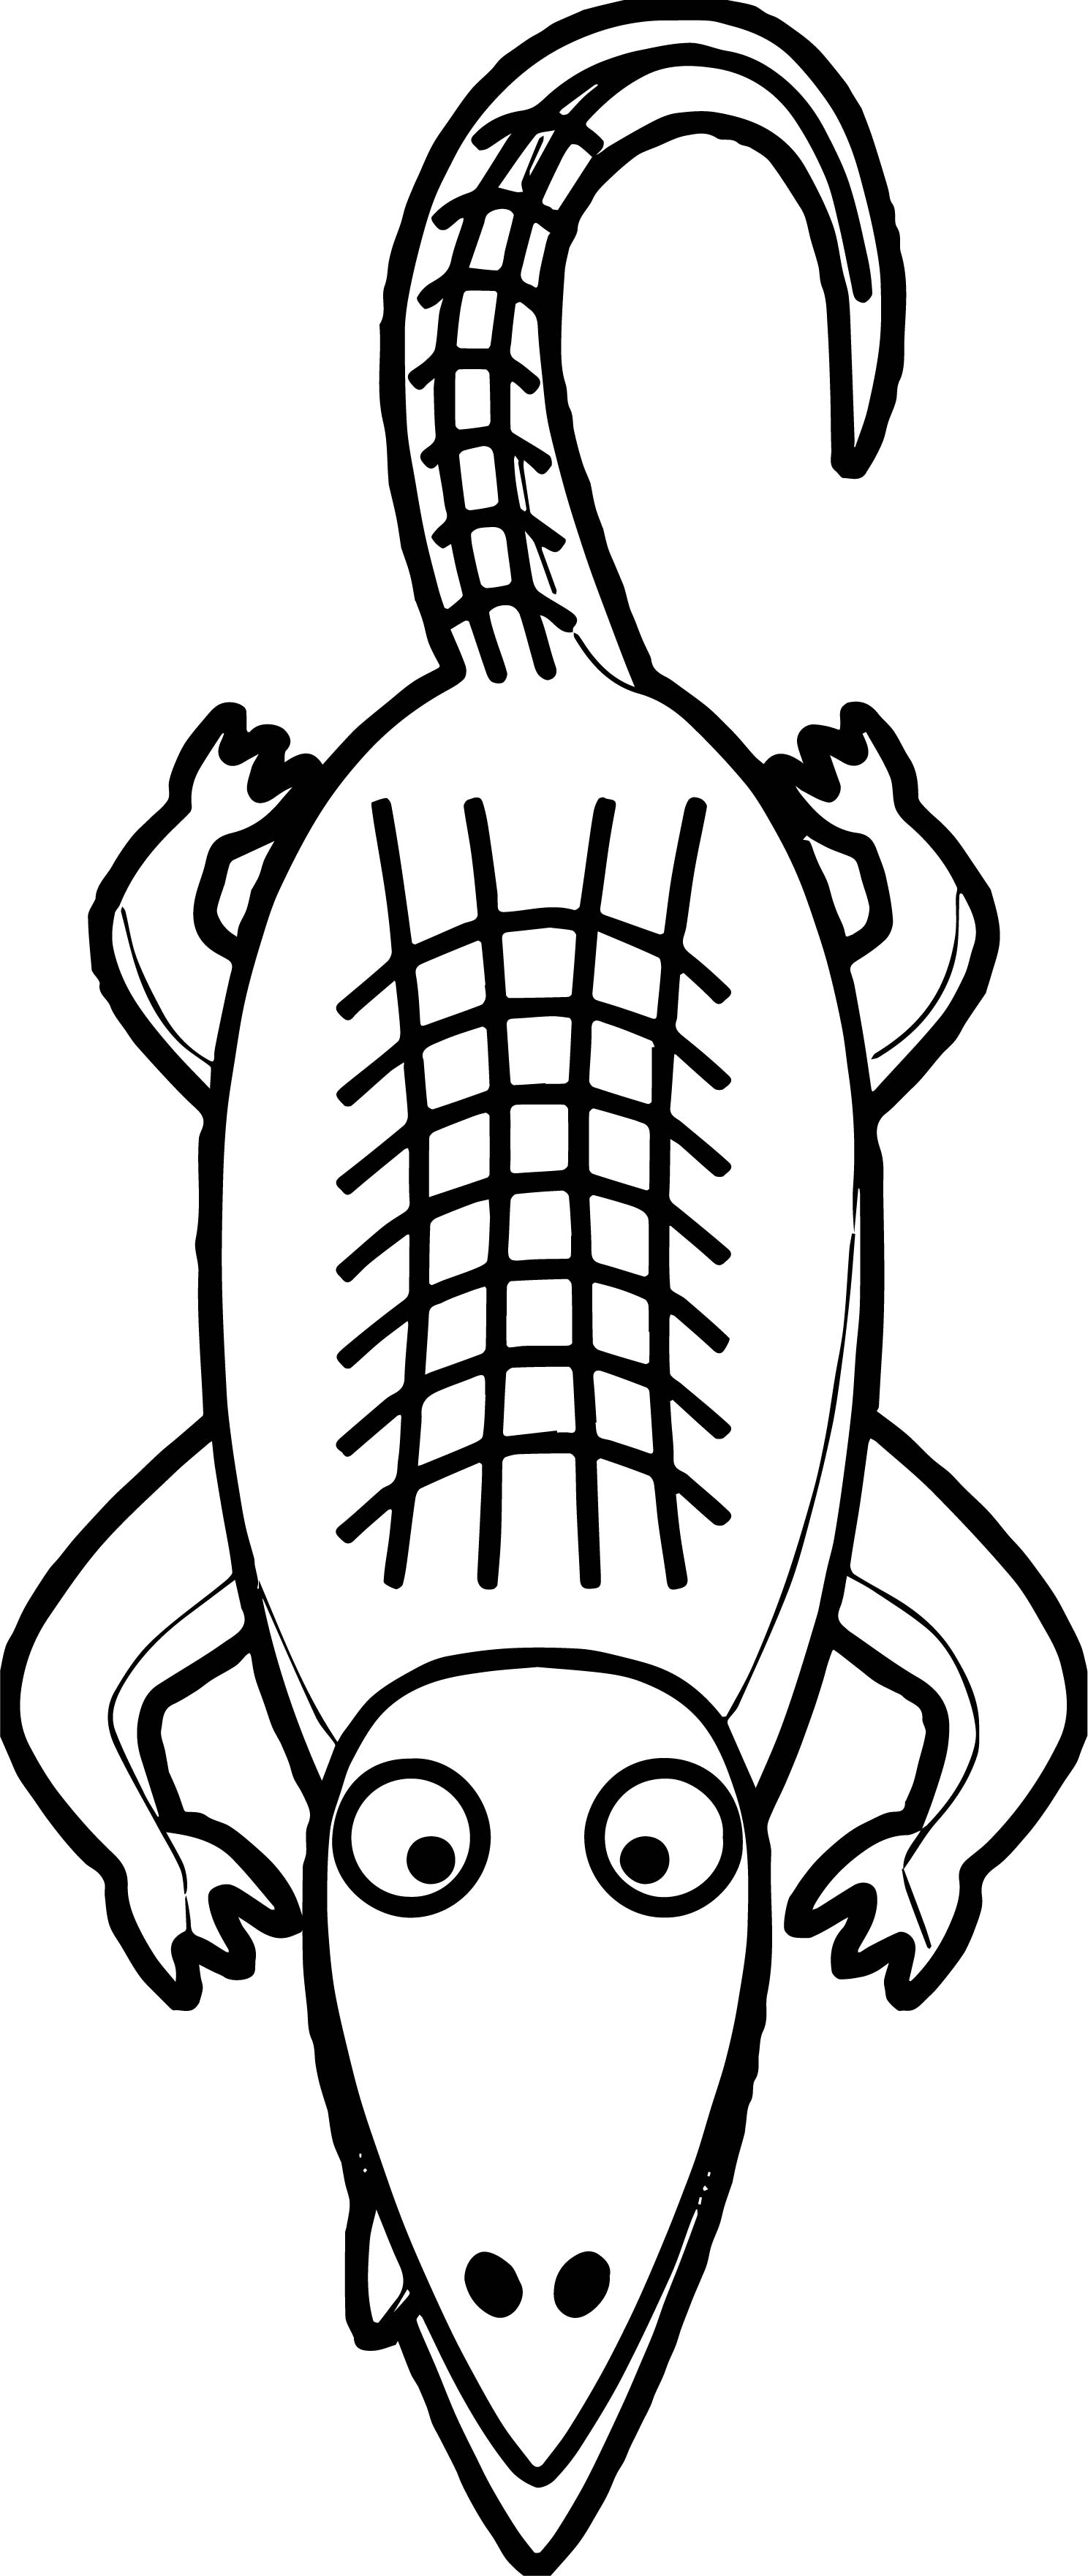 coloring pages an alligator in a sleigh bluebison - Alligator Clip Art Coloring Pages